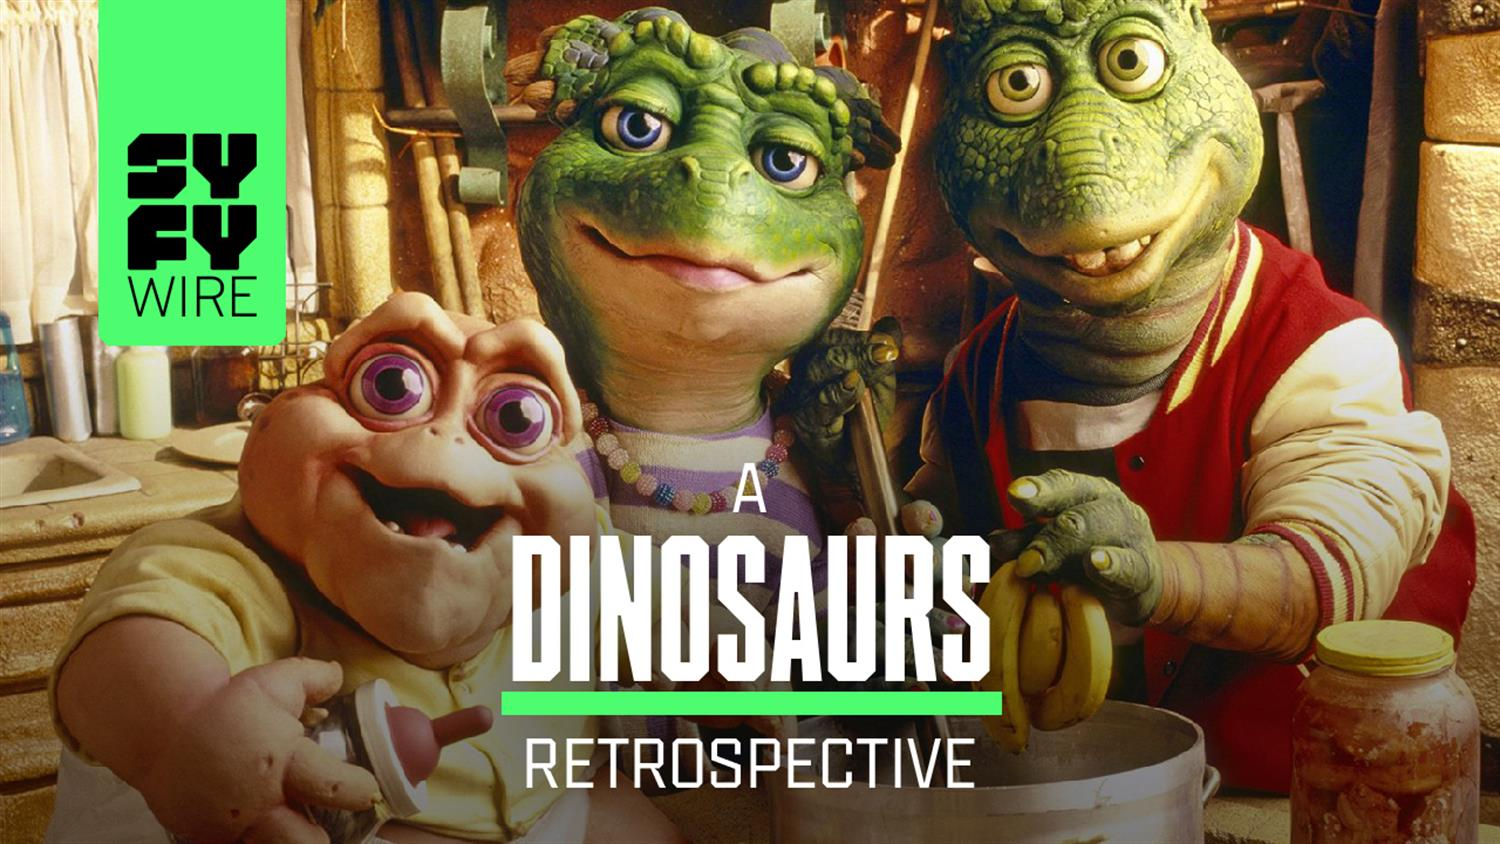 Dinosaurs: The Most Insane Sitcom Ever? (A Look Back)